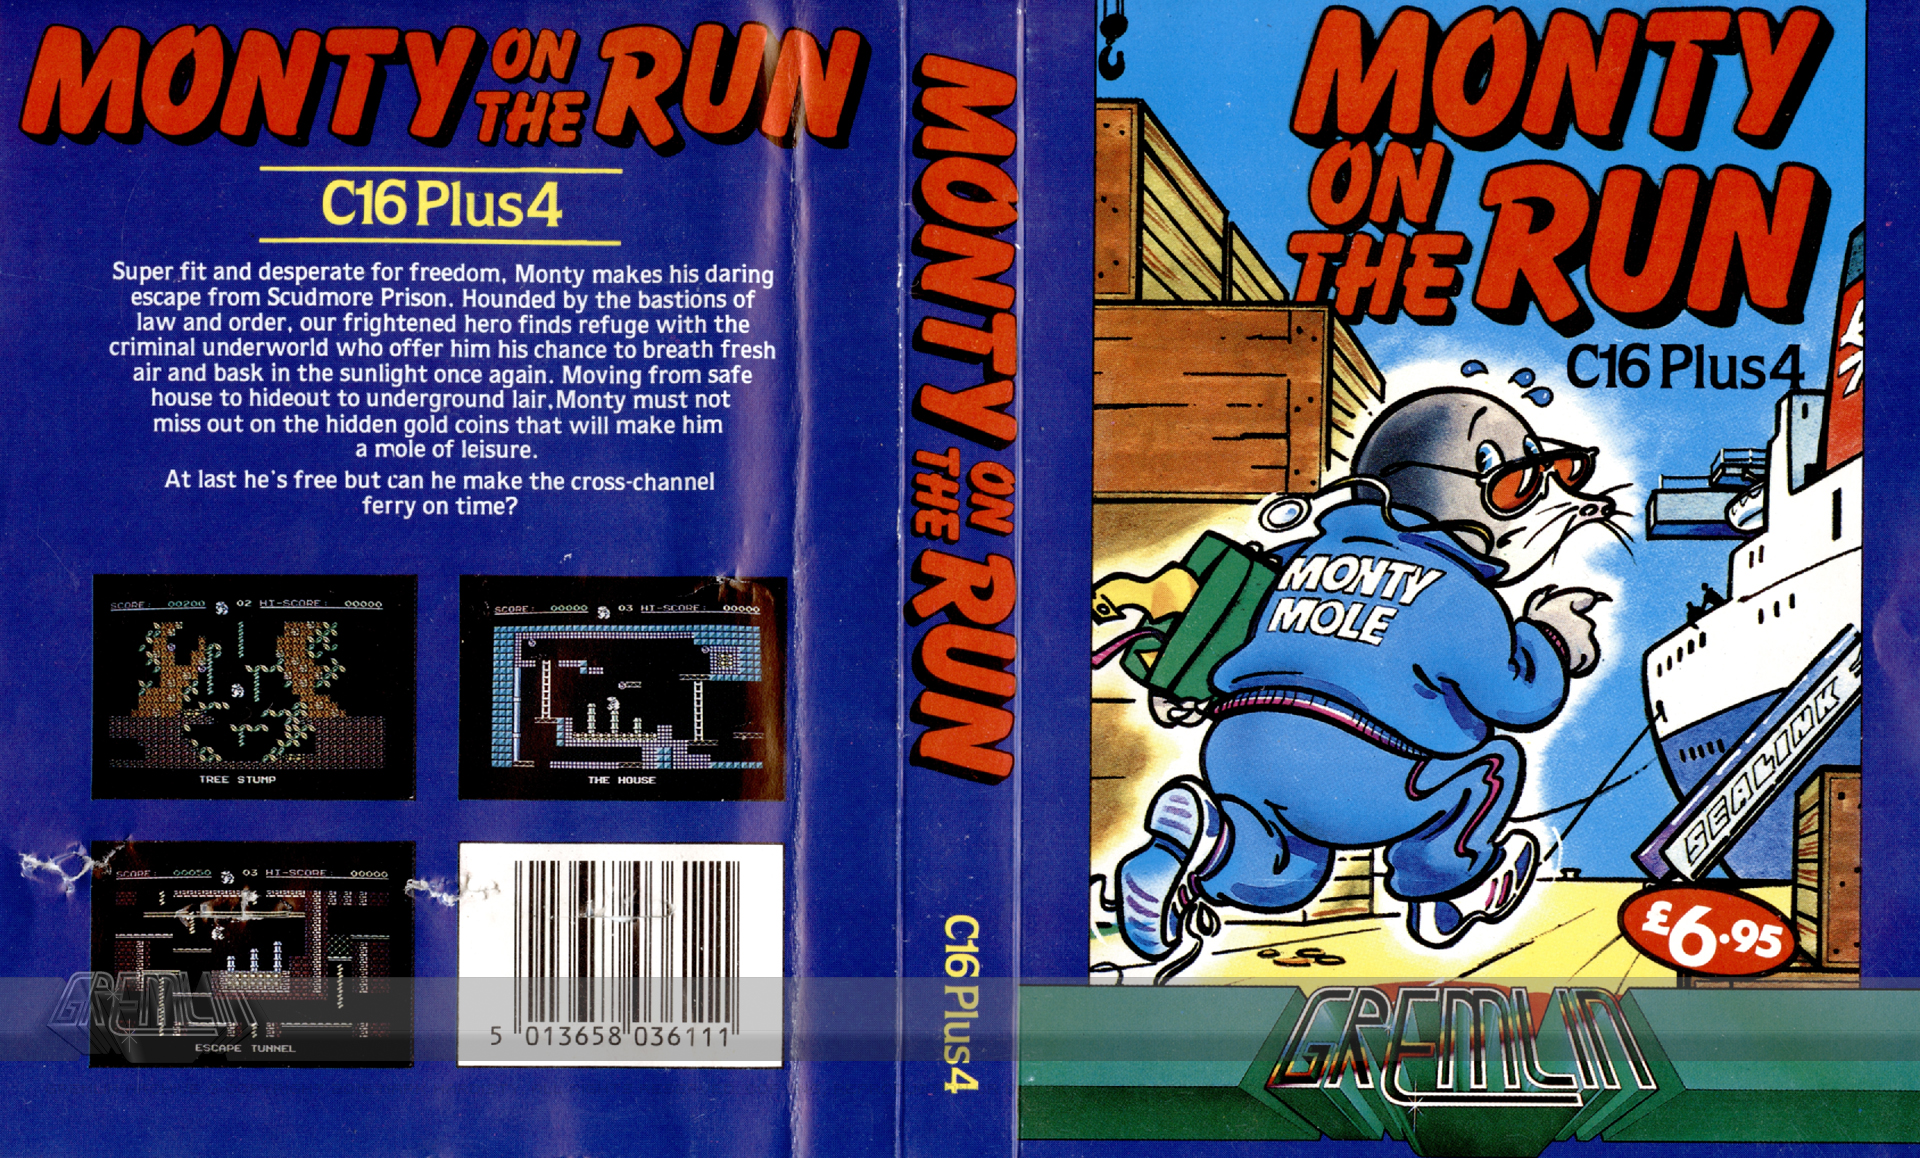 Monty on the Run (C16 Plus/4)